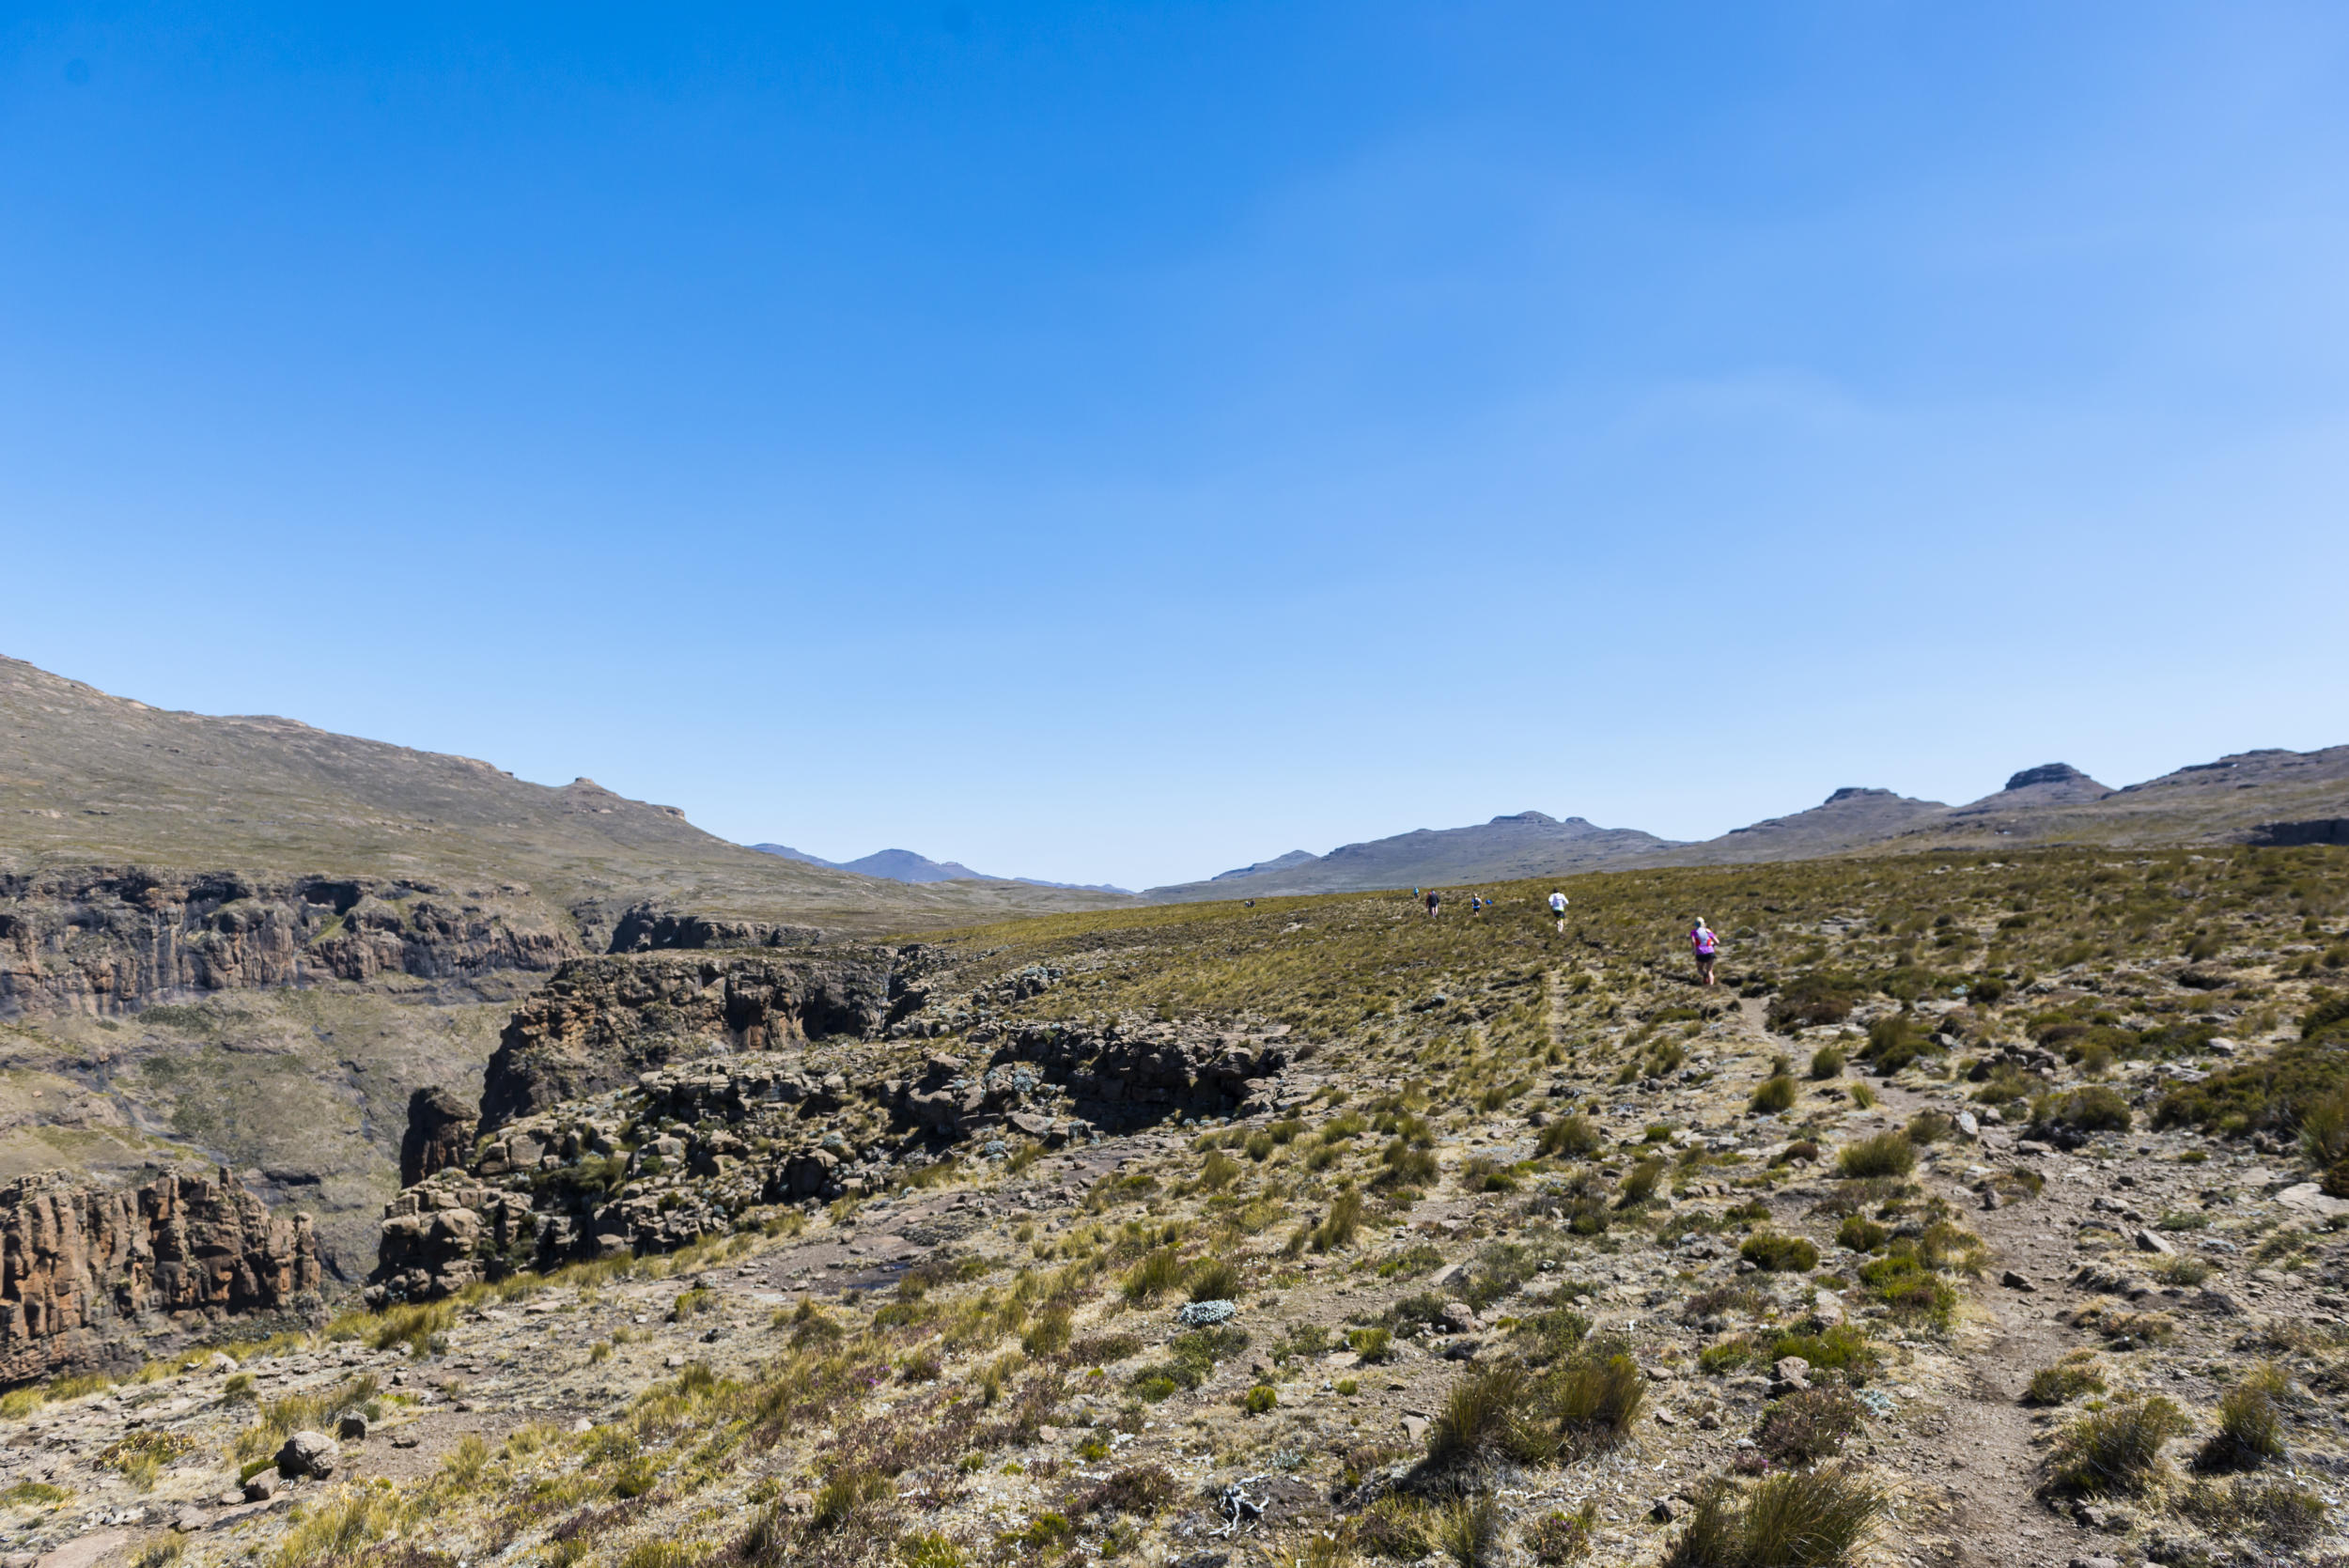 The 2017 Ultra-Trail Drakensberg has added another dimension to its already appealing offer with a novice-friendly Drakensberg Rockjumper two day race taking place on Friday 28 to Saturday 29 April. PHOTO: Anthony Grote